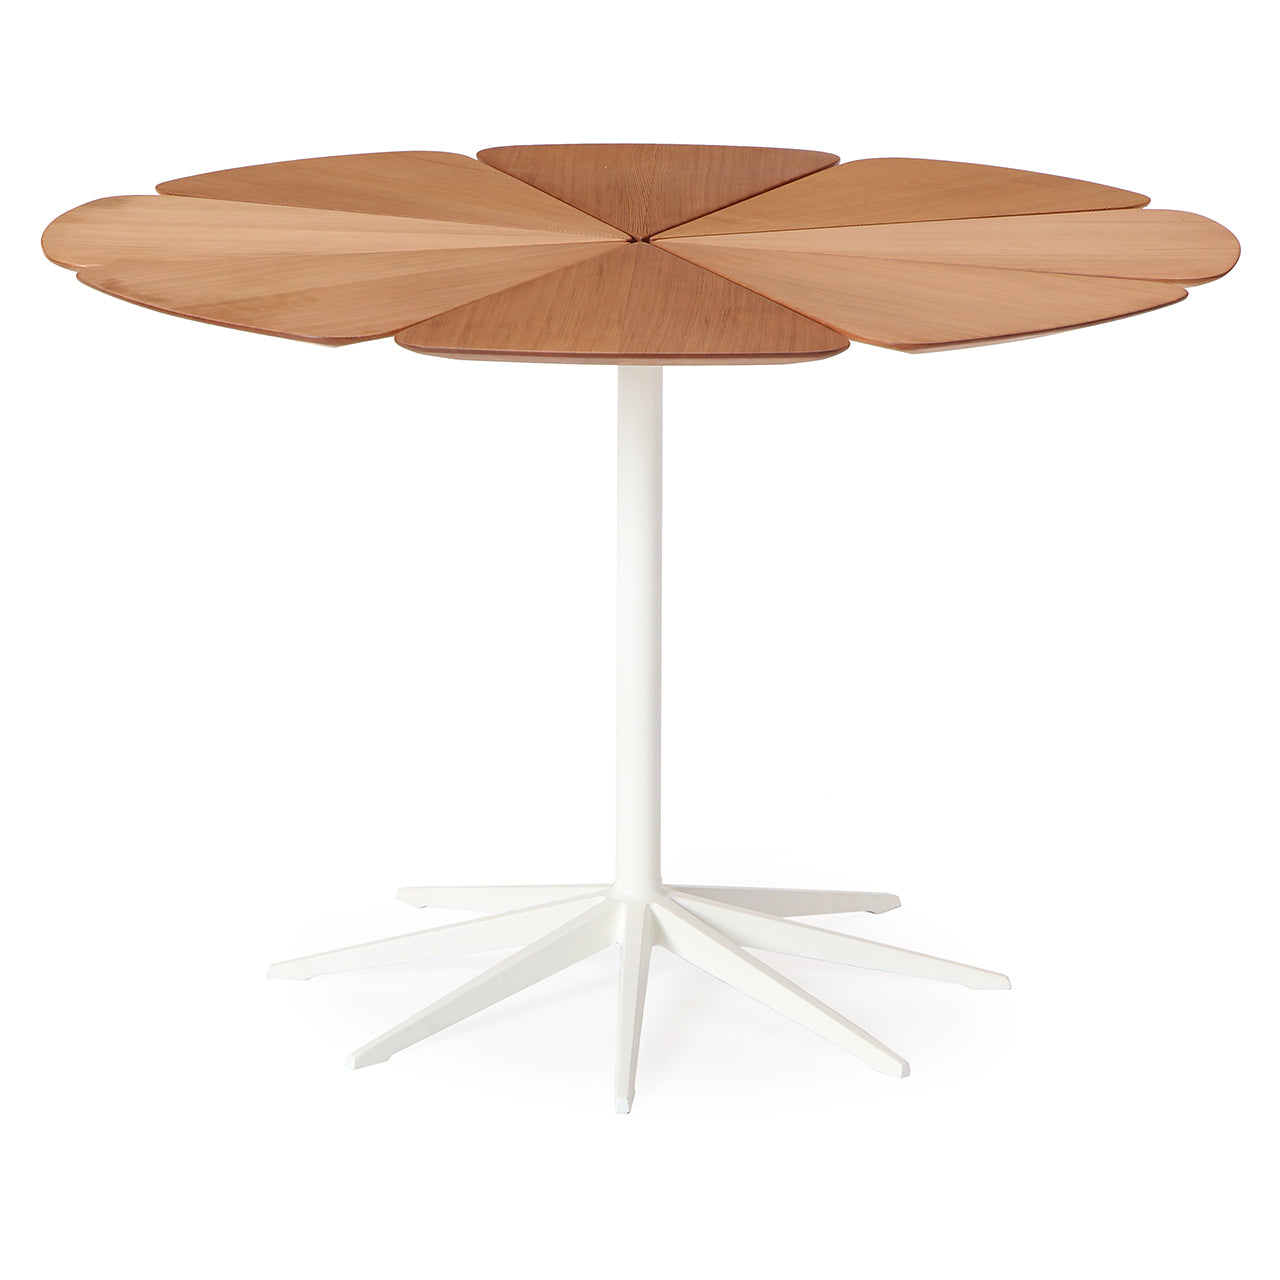 'Petal' Dining Table